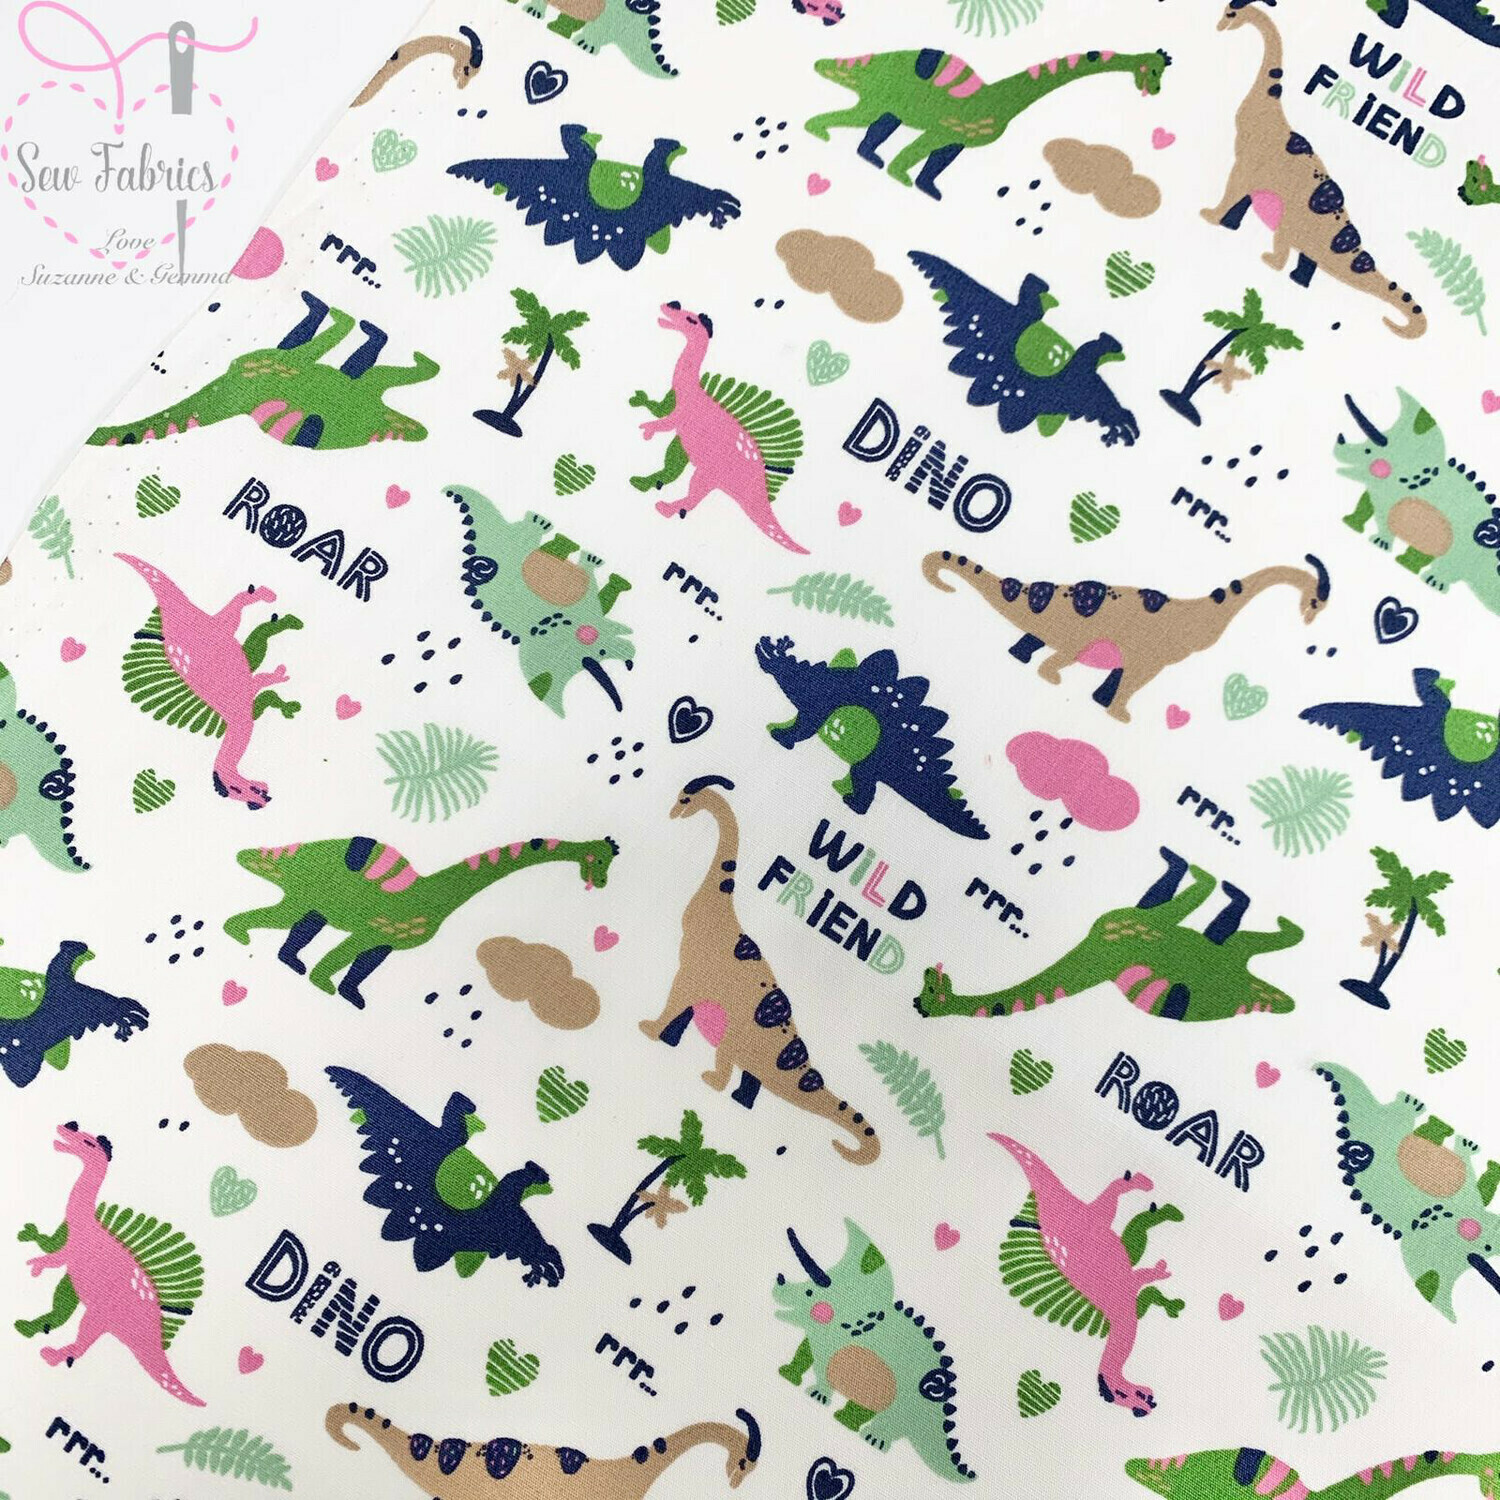 Rose & Hubble Ivory with Pink Dinosaur Print Childrens Fabric 100% Cotton Poplin Material